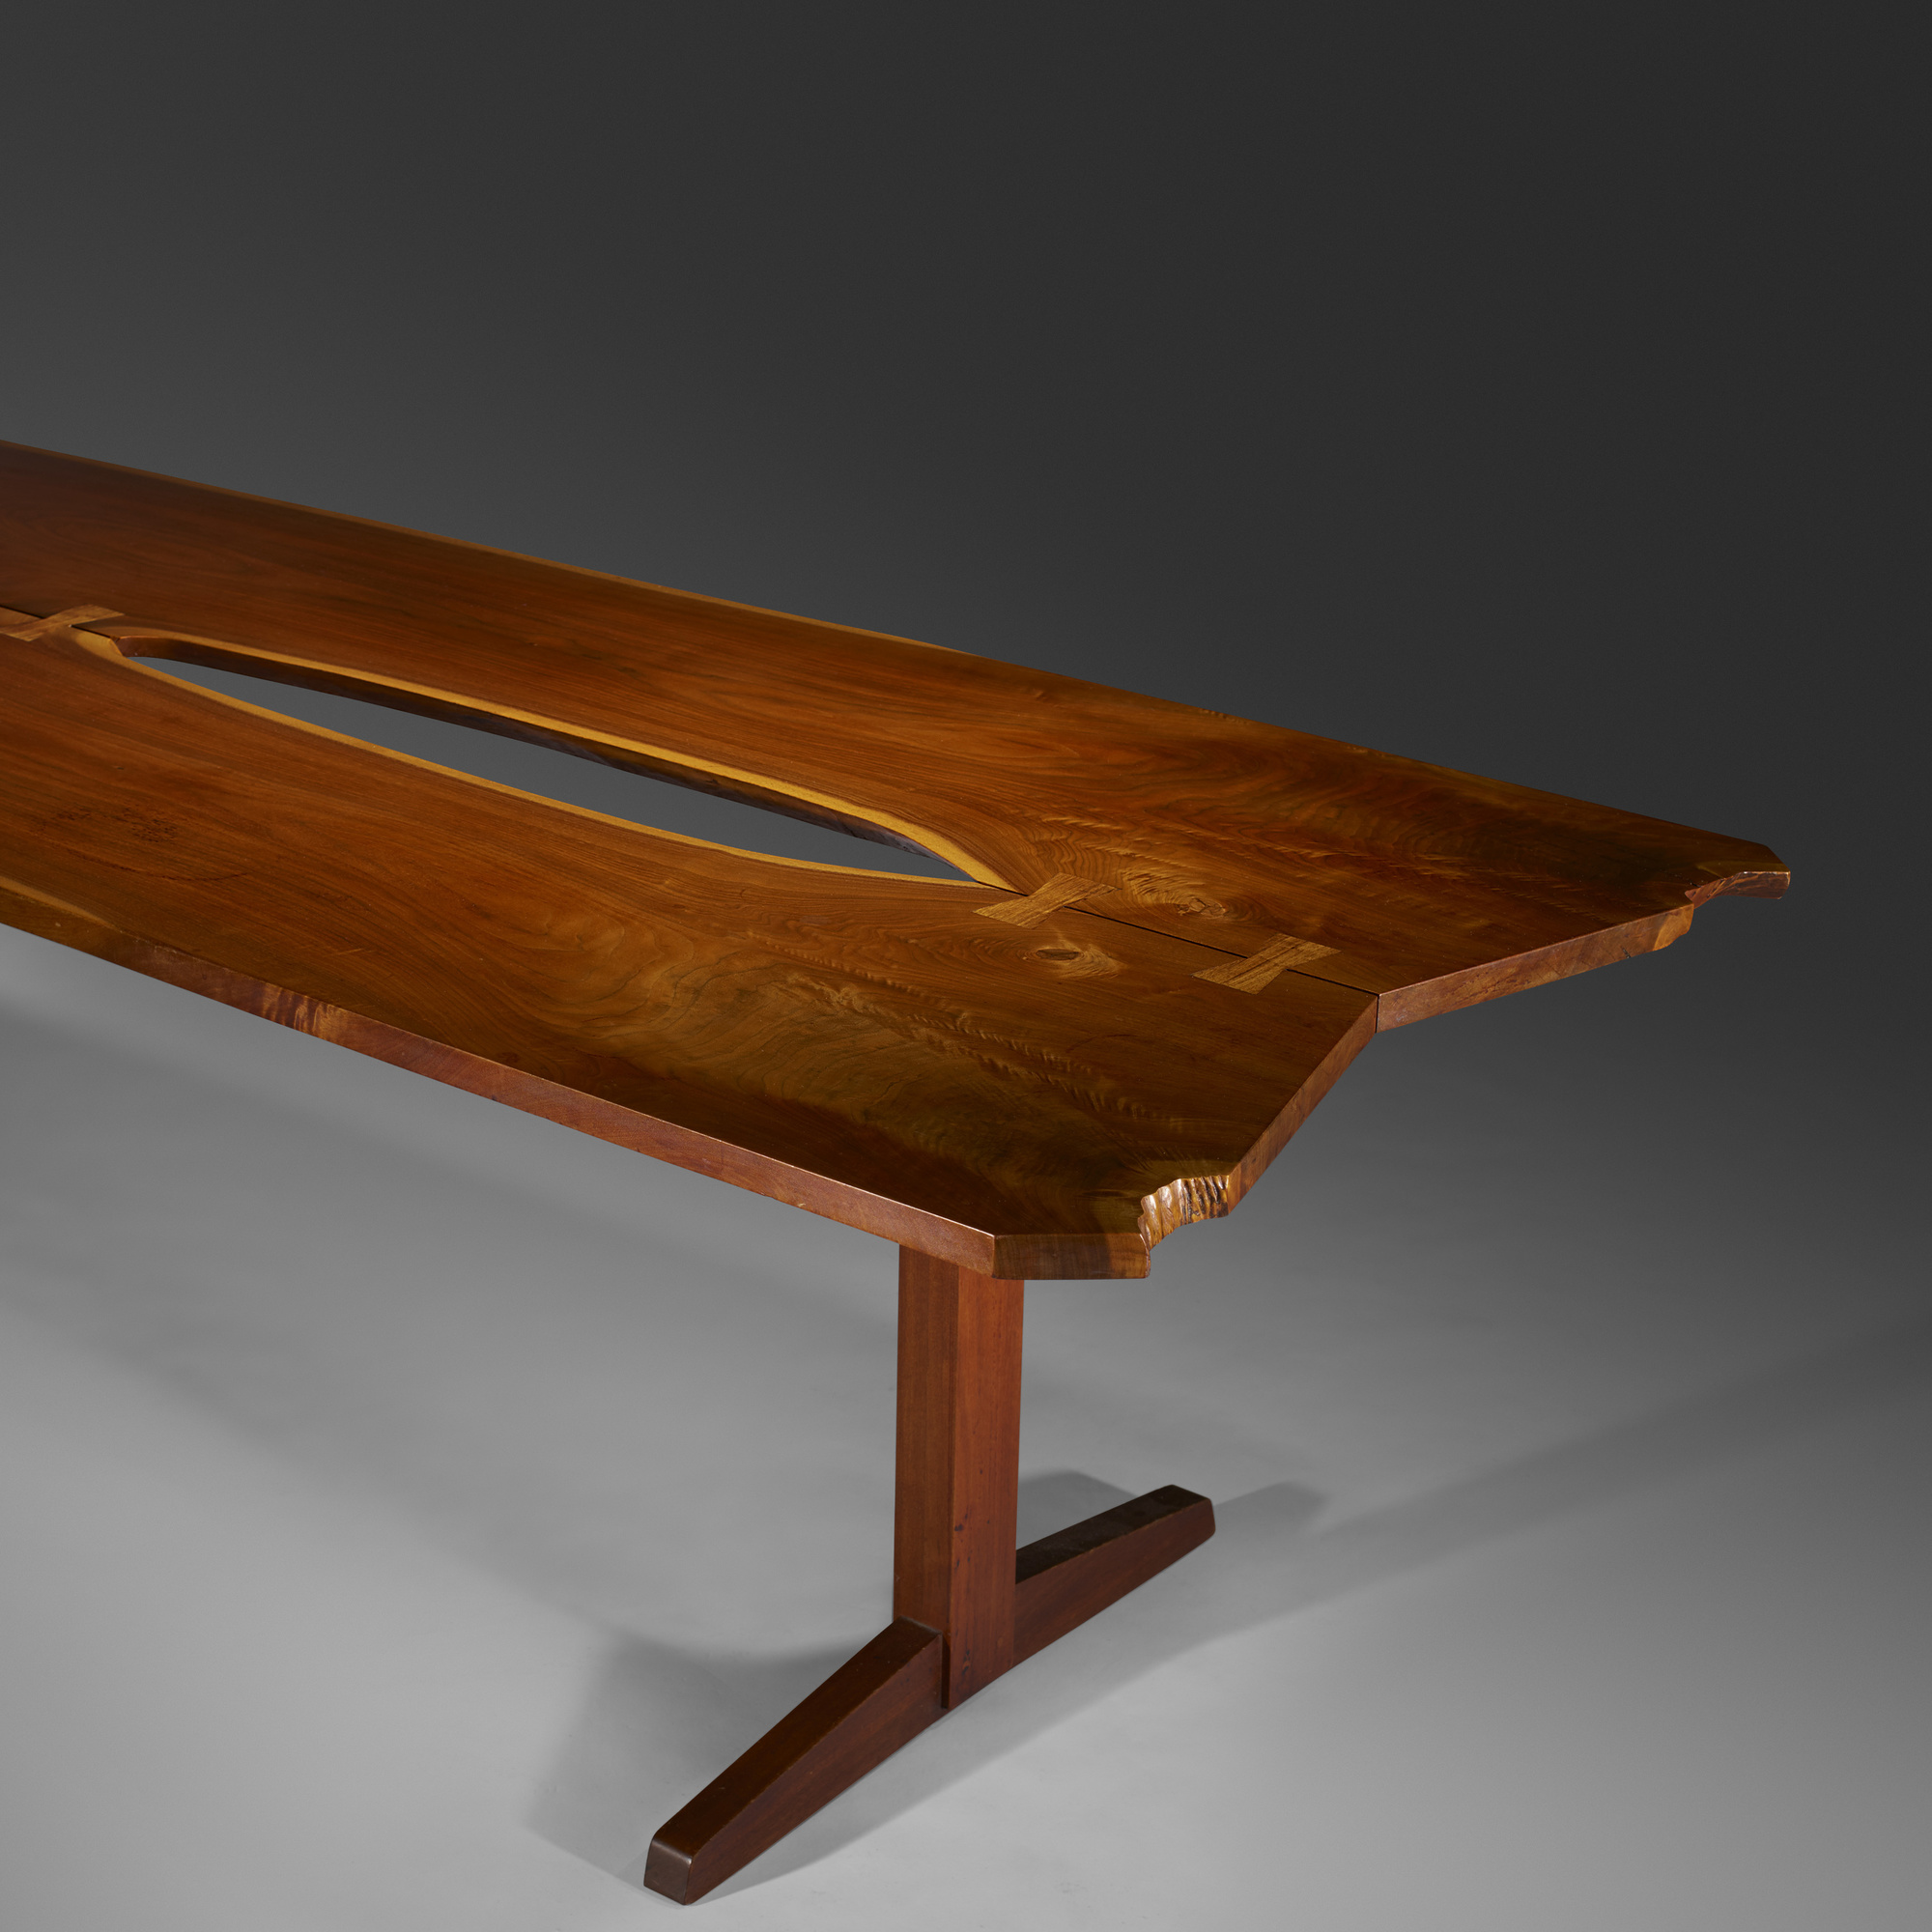 Nakashima Table 102: george nakashima / early and important trestle dining table